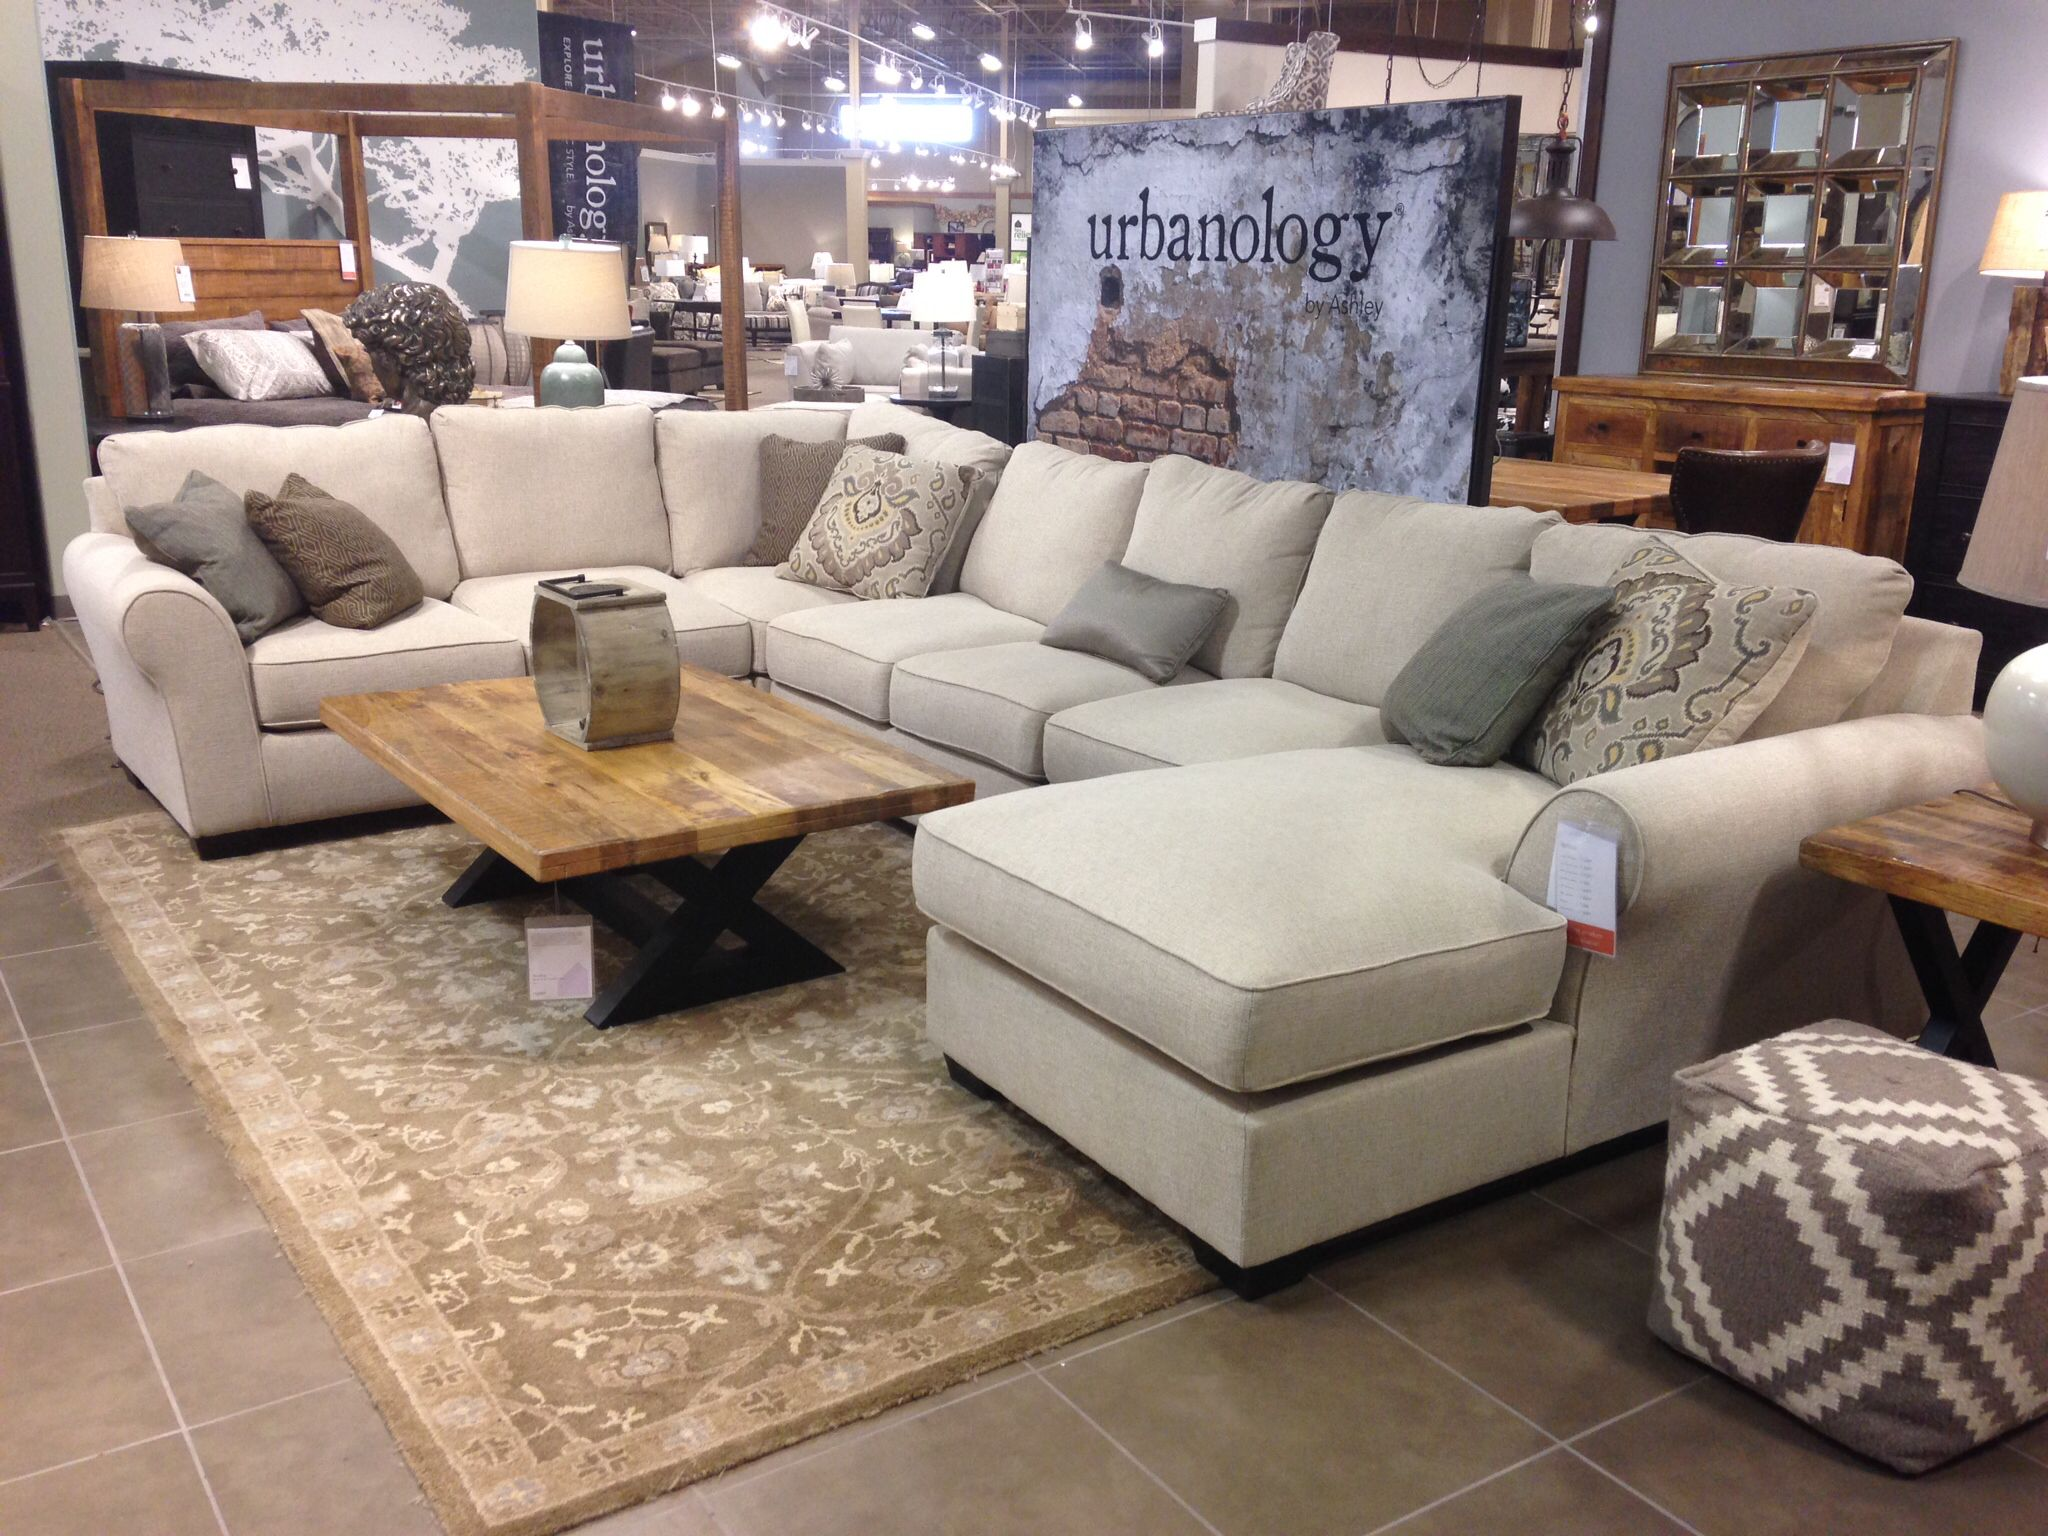 Ashley Furniture Urbanology Modern Rustic In 2019 Family Room